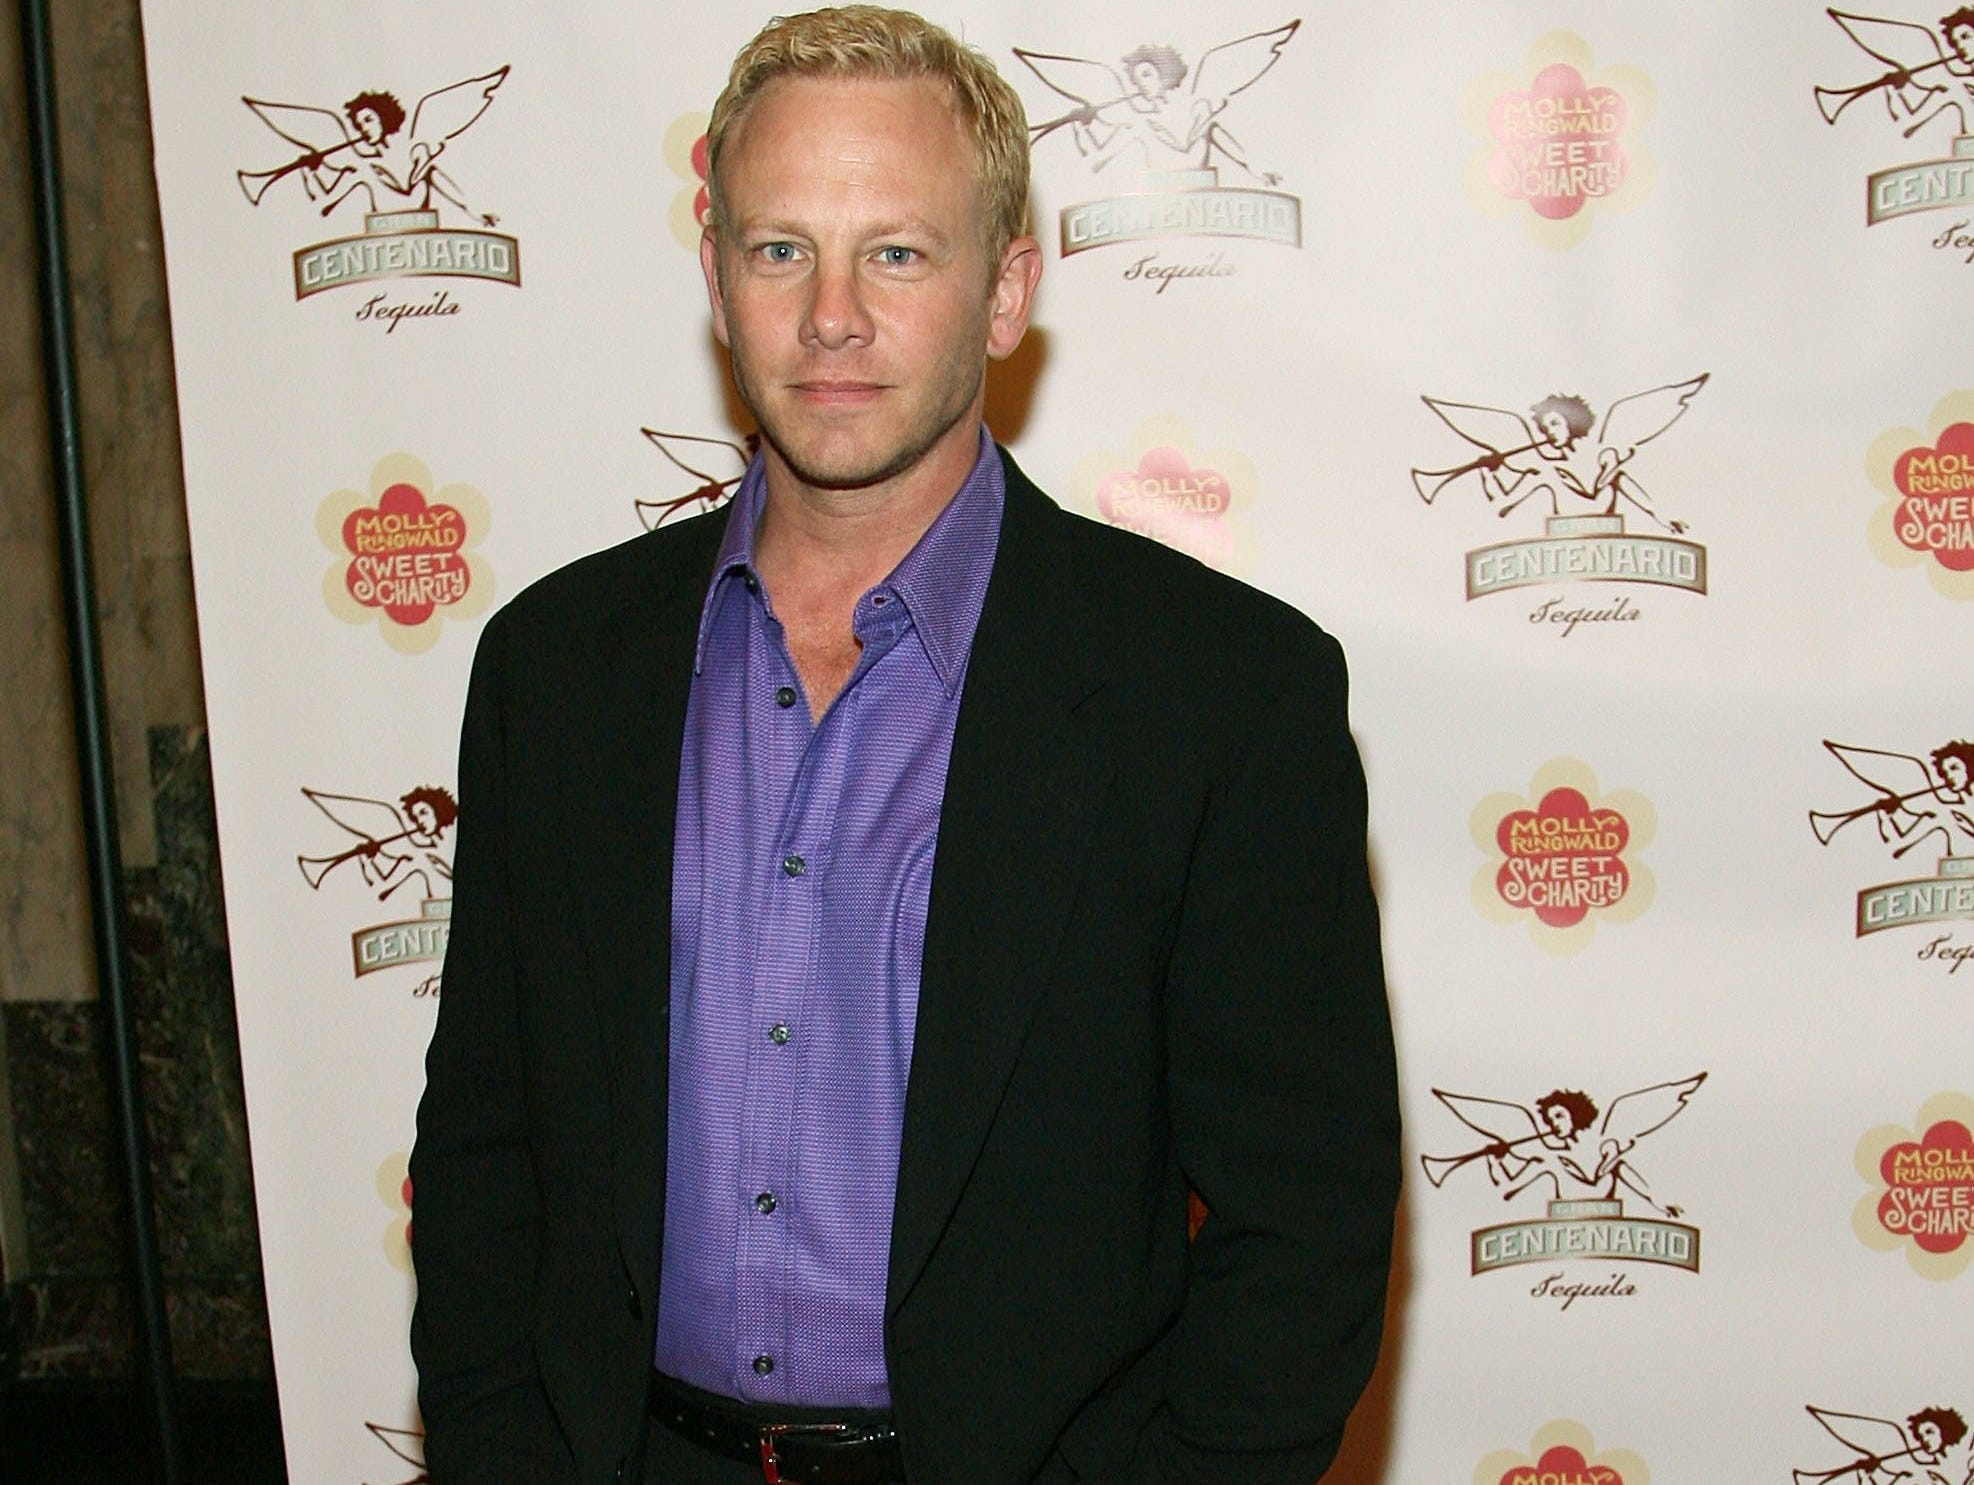 Ian Ziering then: If you think about it, Ziering's shift from Hollywood C-lister to Las Vegas Chippendale isn't that trouser-dropping of a surprise: Remember how slick '90210's Steve Sanders was?